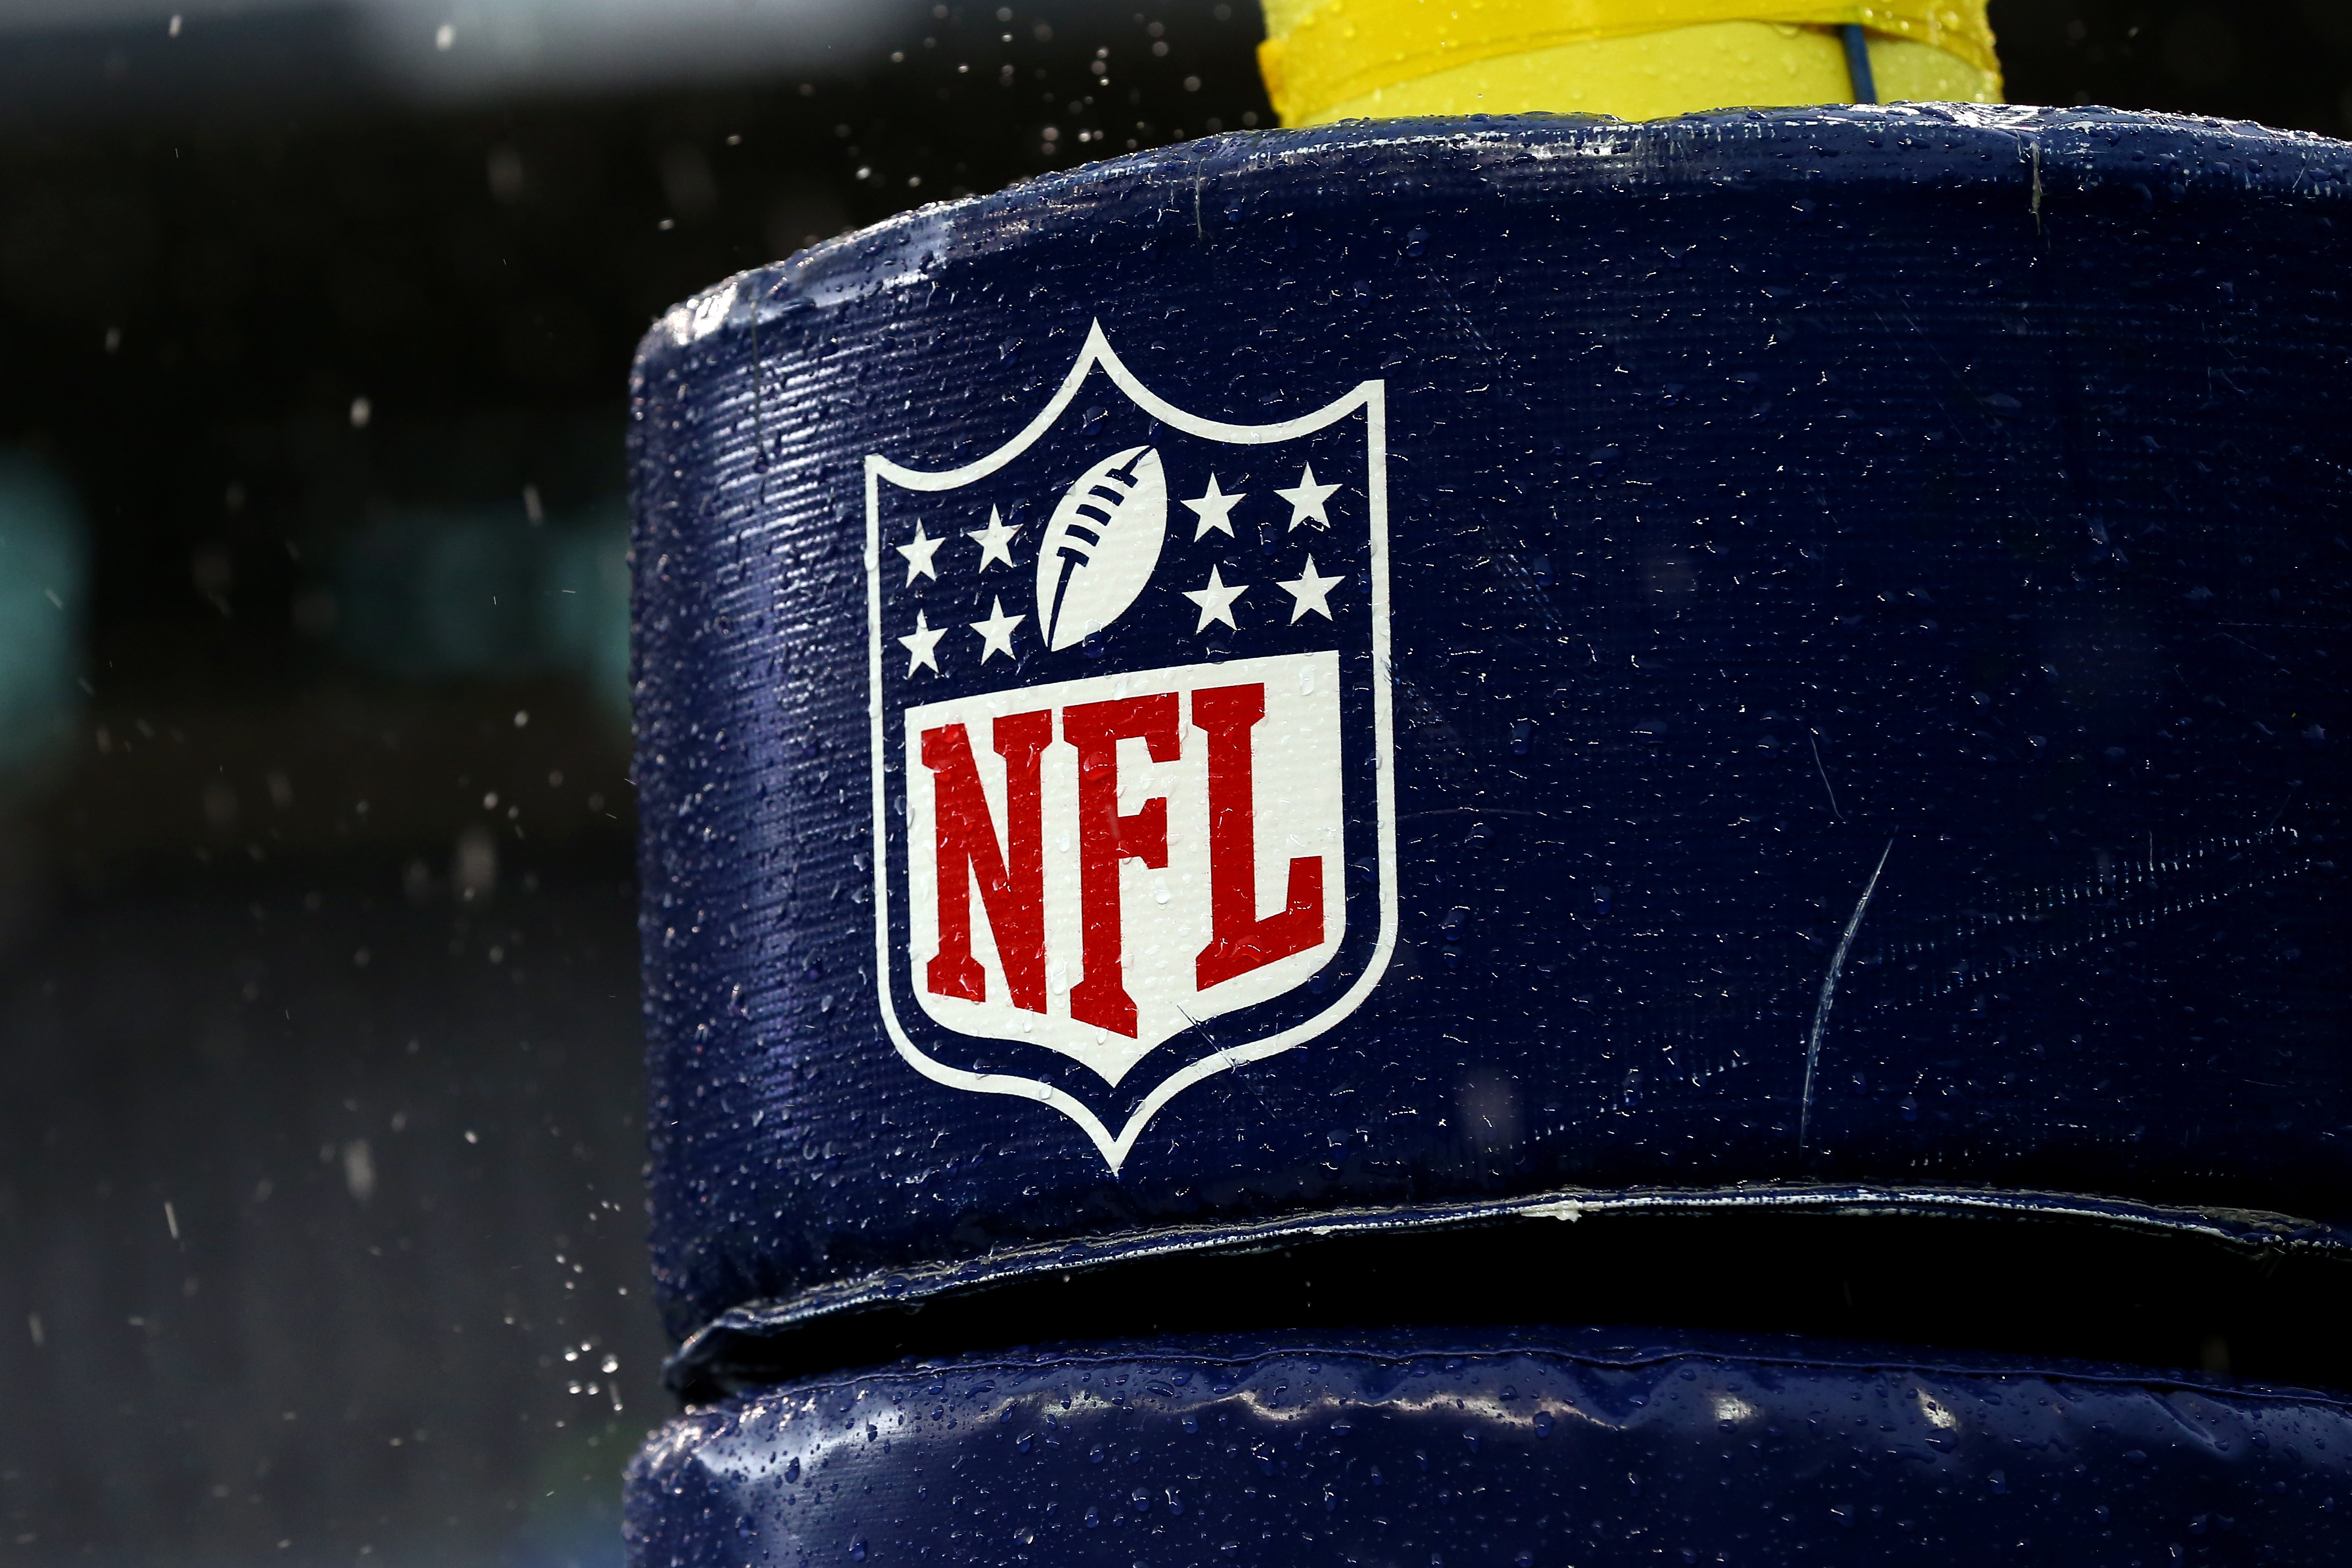 Image of the NFL logo on a goal post before the 2015 NFC Championship game between the Seattle Seahawks and the Green Bay Packers at CenturyLink Field in Seattle, Washington.